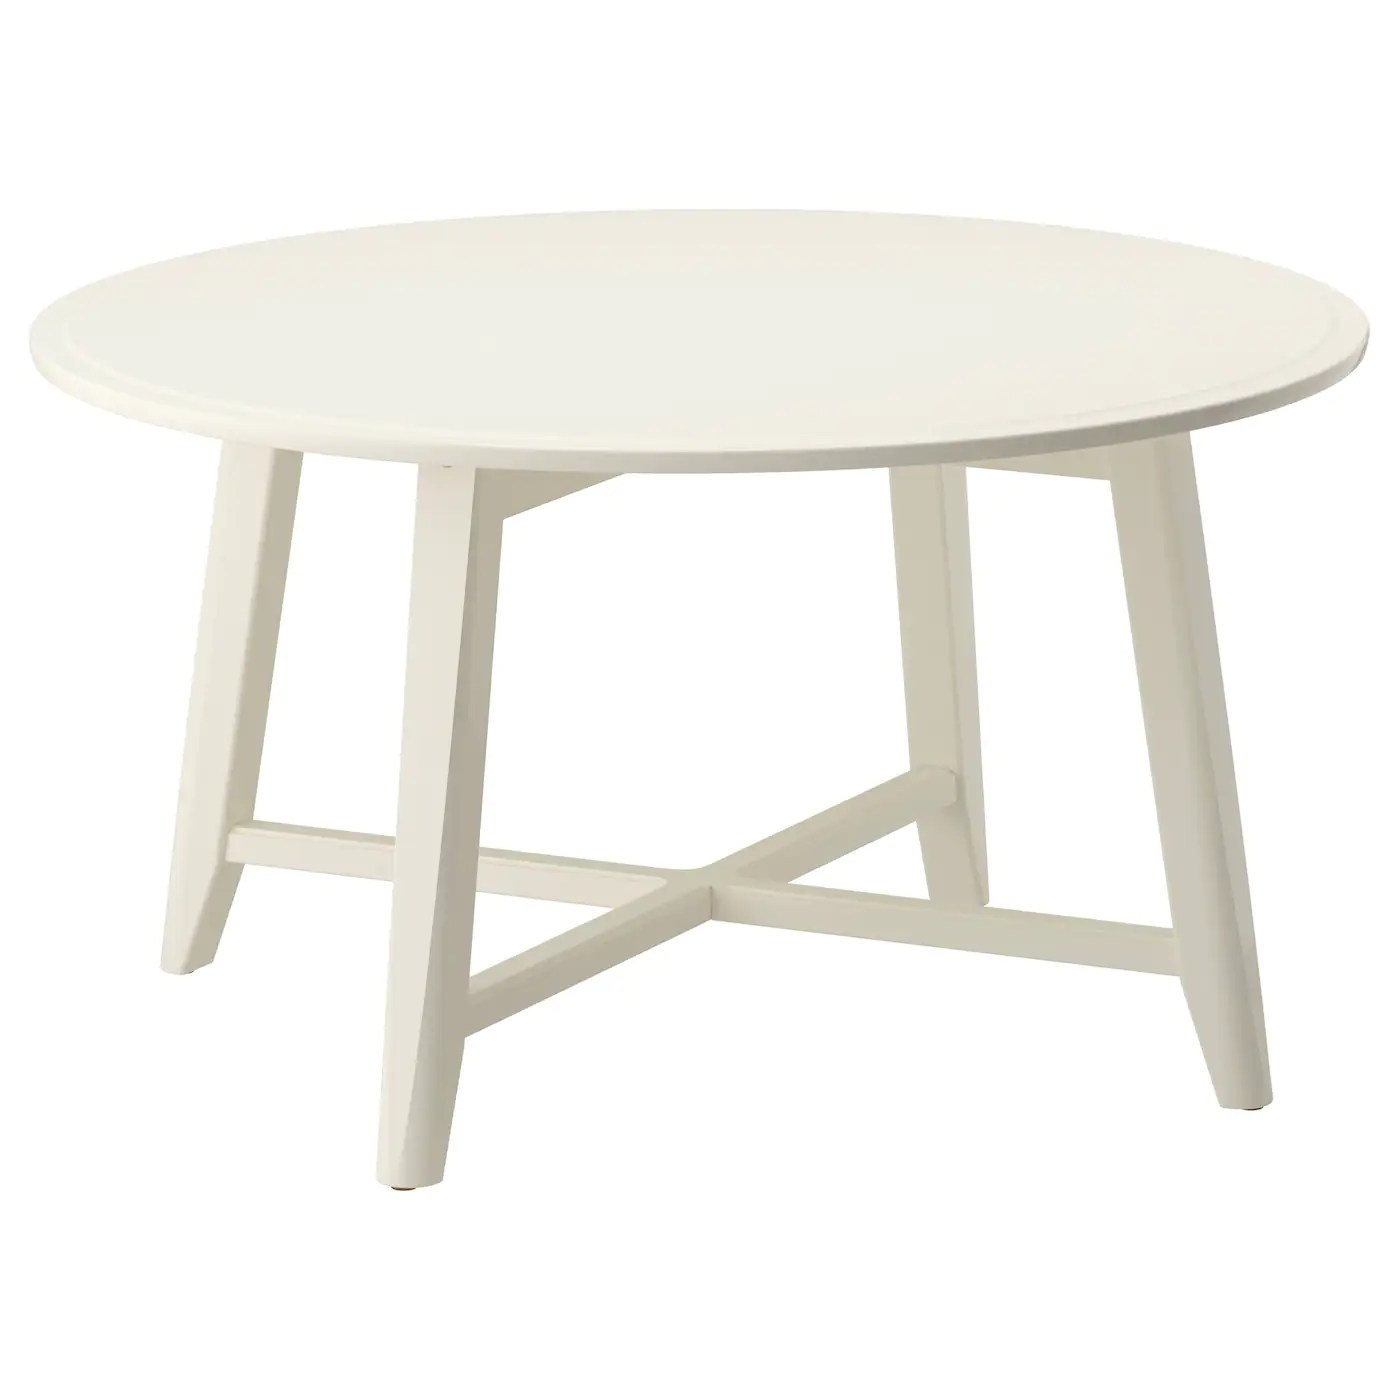 Ikea Table Basse Noir Kragsta Table Basse Blanc 90 Cm Ikea